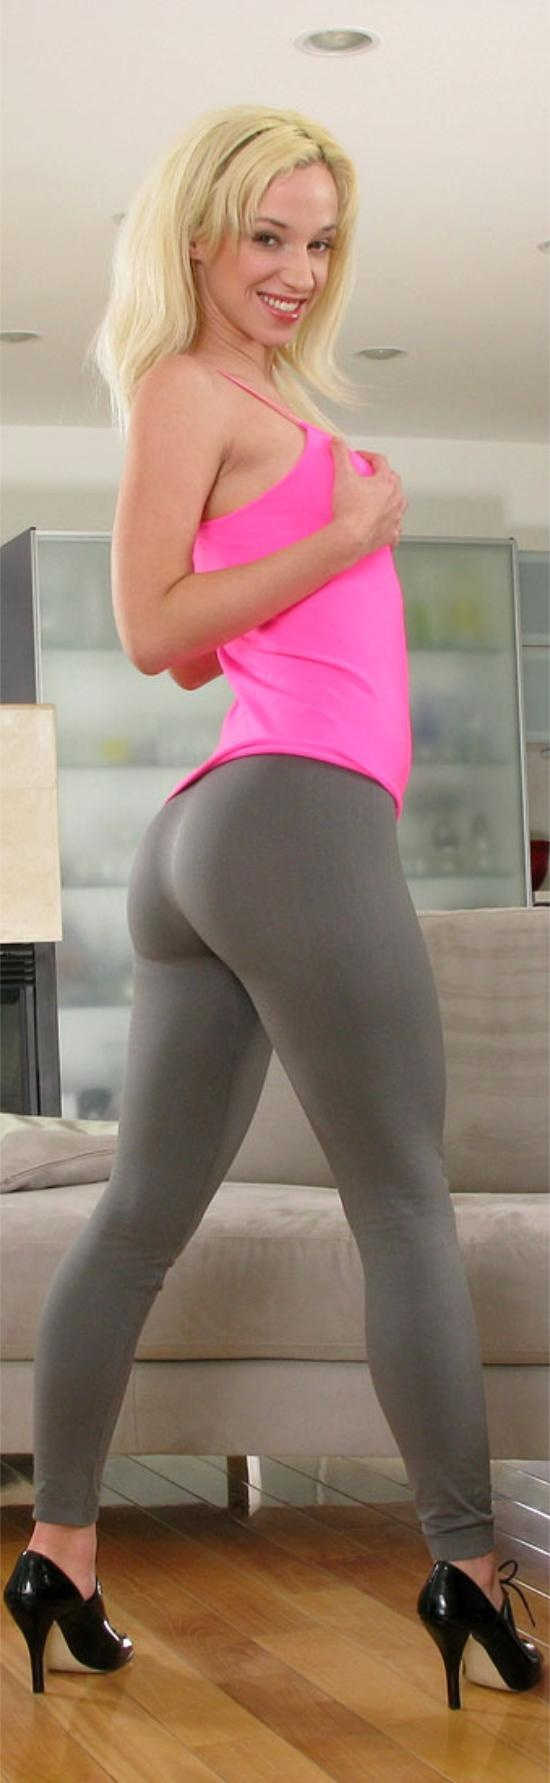 Yoga pants hot girls anal means